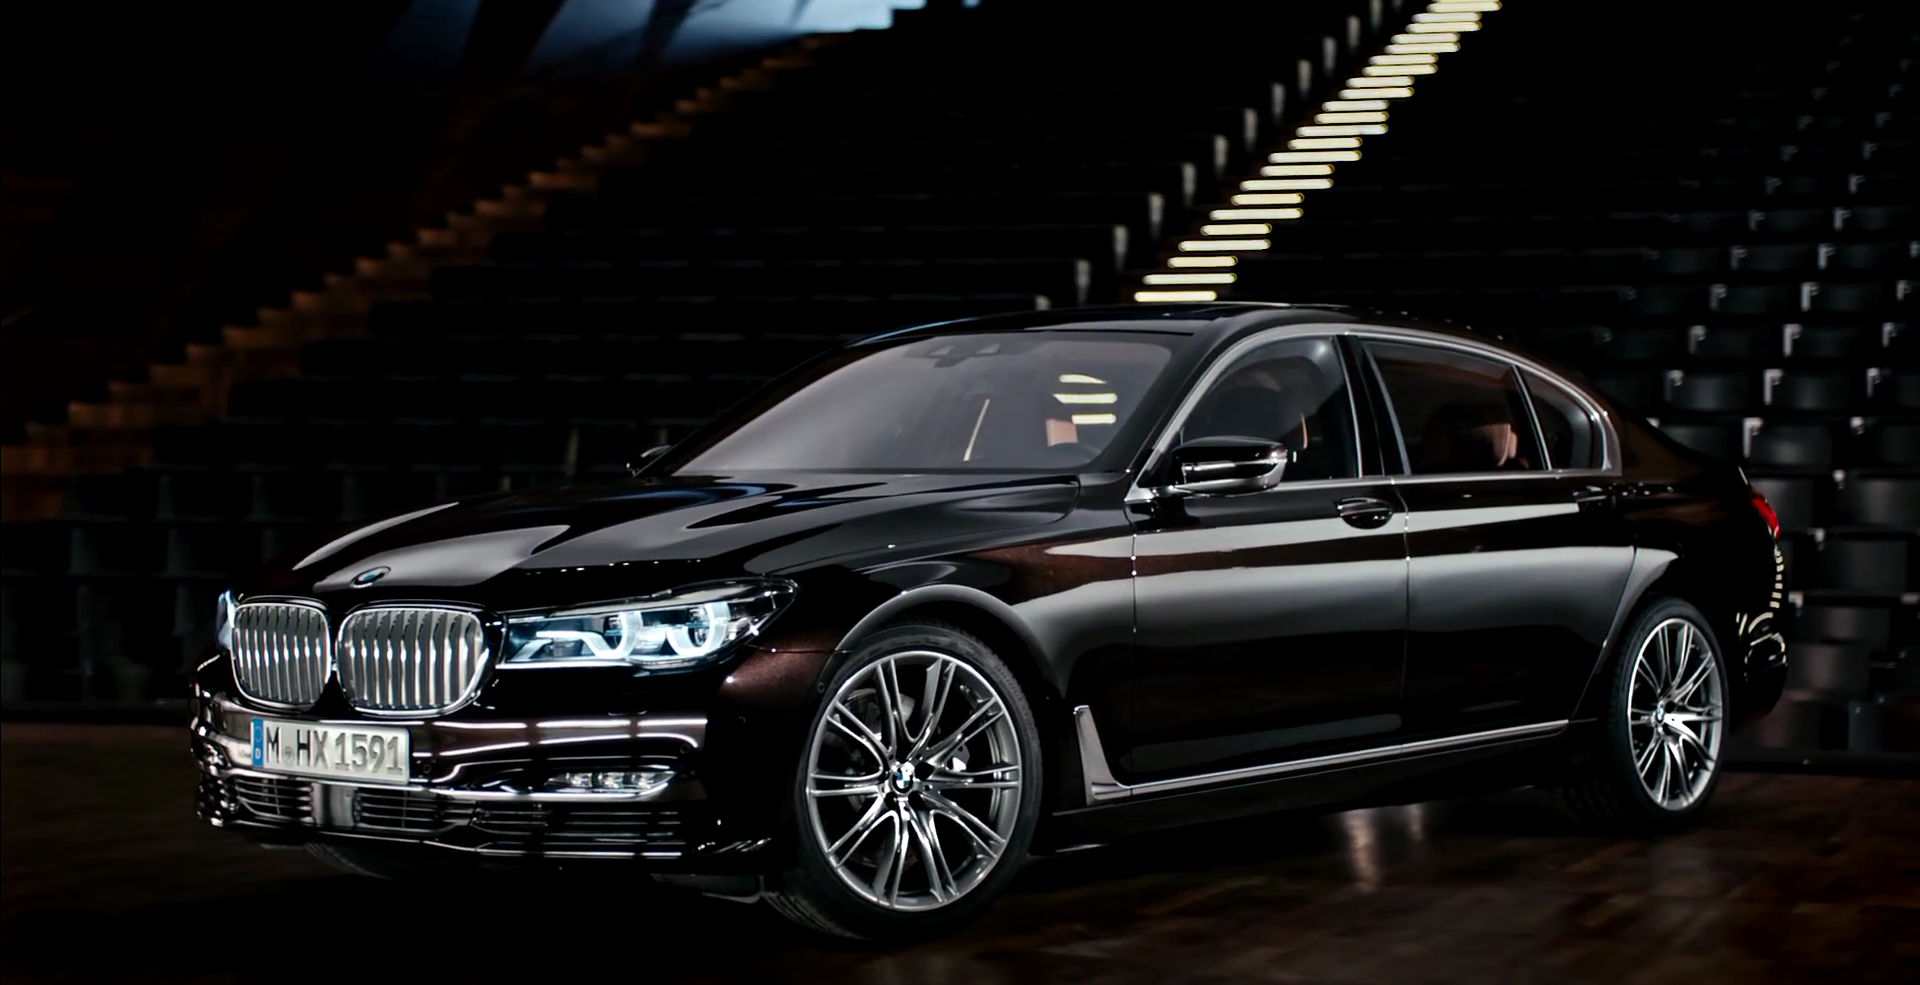 Bmw Gives You A Peek Into The Newest 7 Series Video Bmw 7 Series Bmw Car